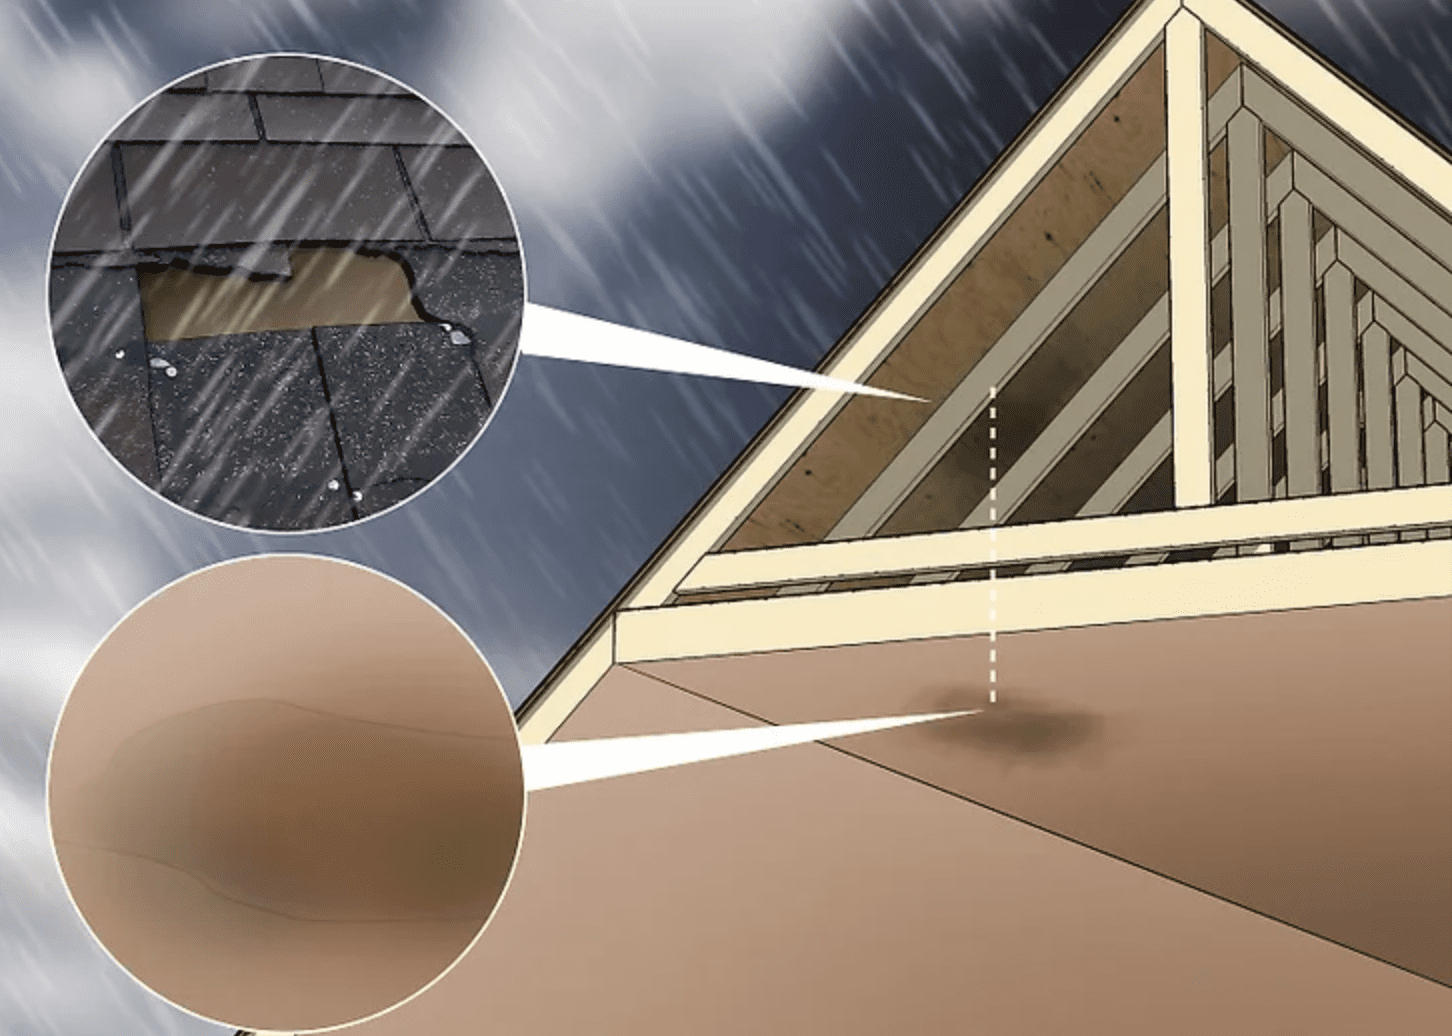 Does Your Home Need A Roof Leak repair?